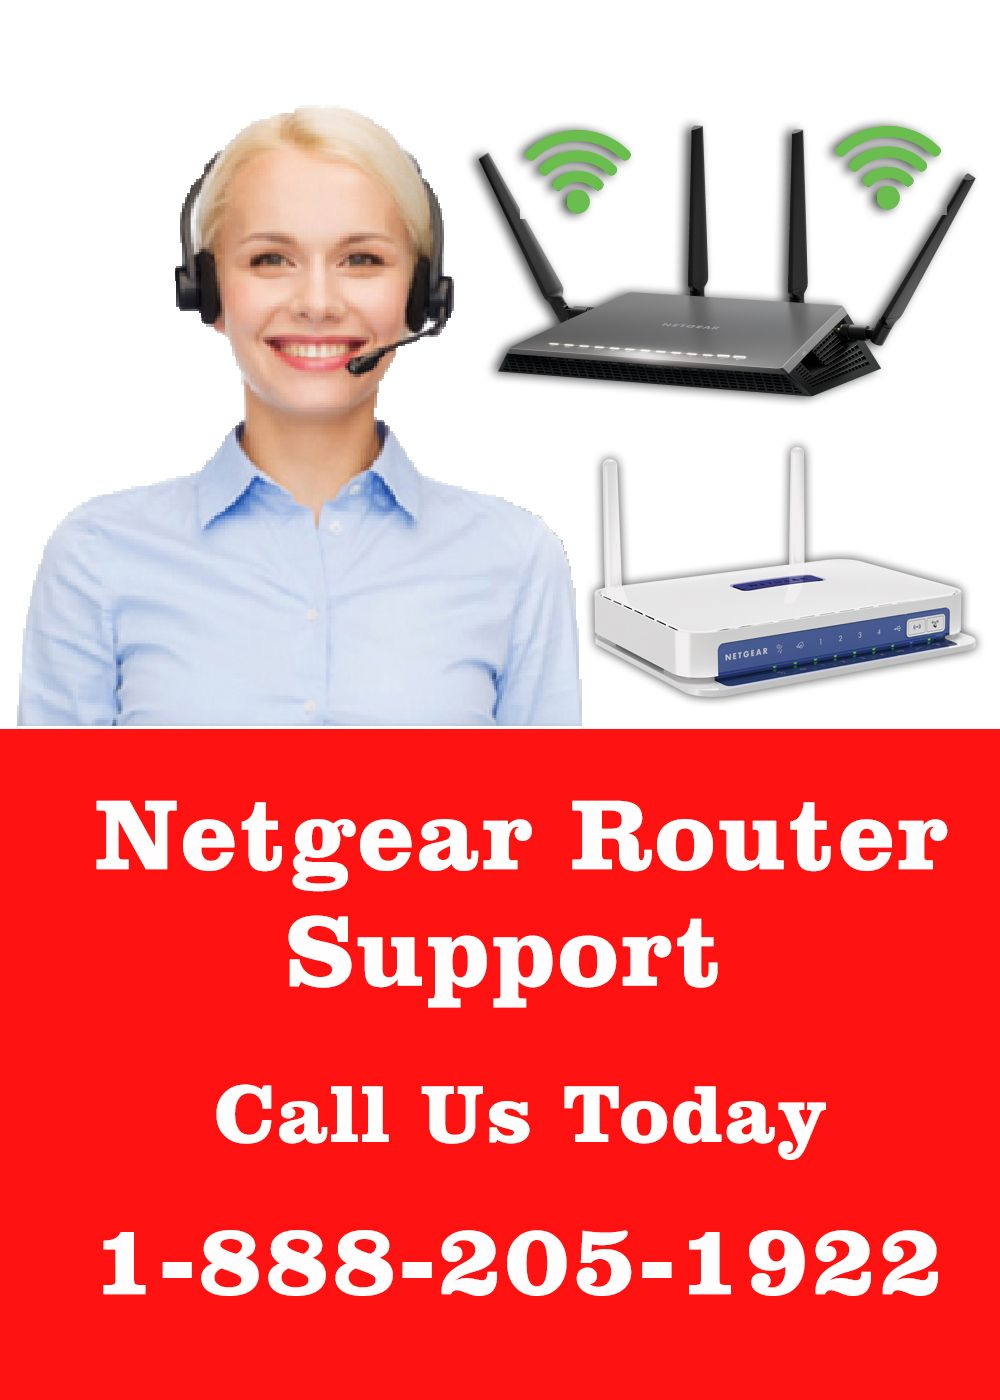 Netgear Router Support number 1-888-205-1922 for Install, Re-install